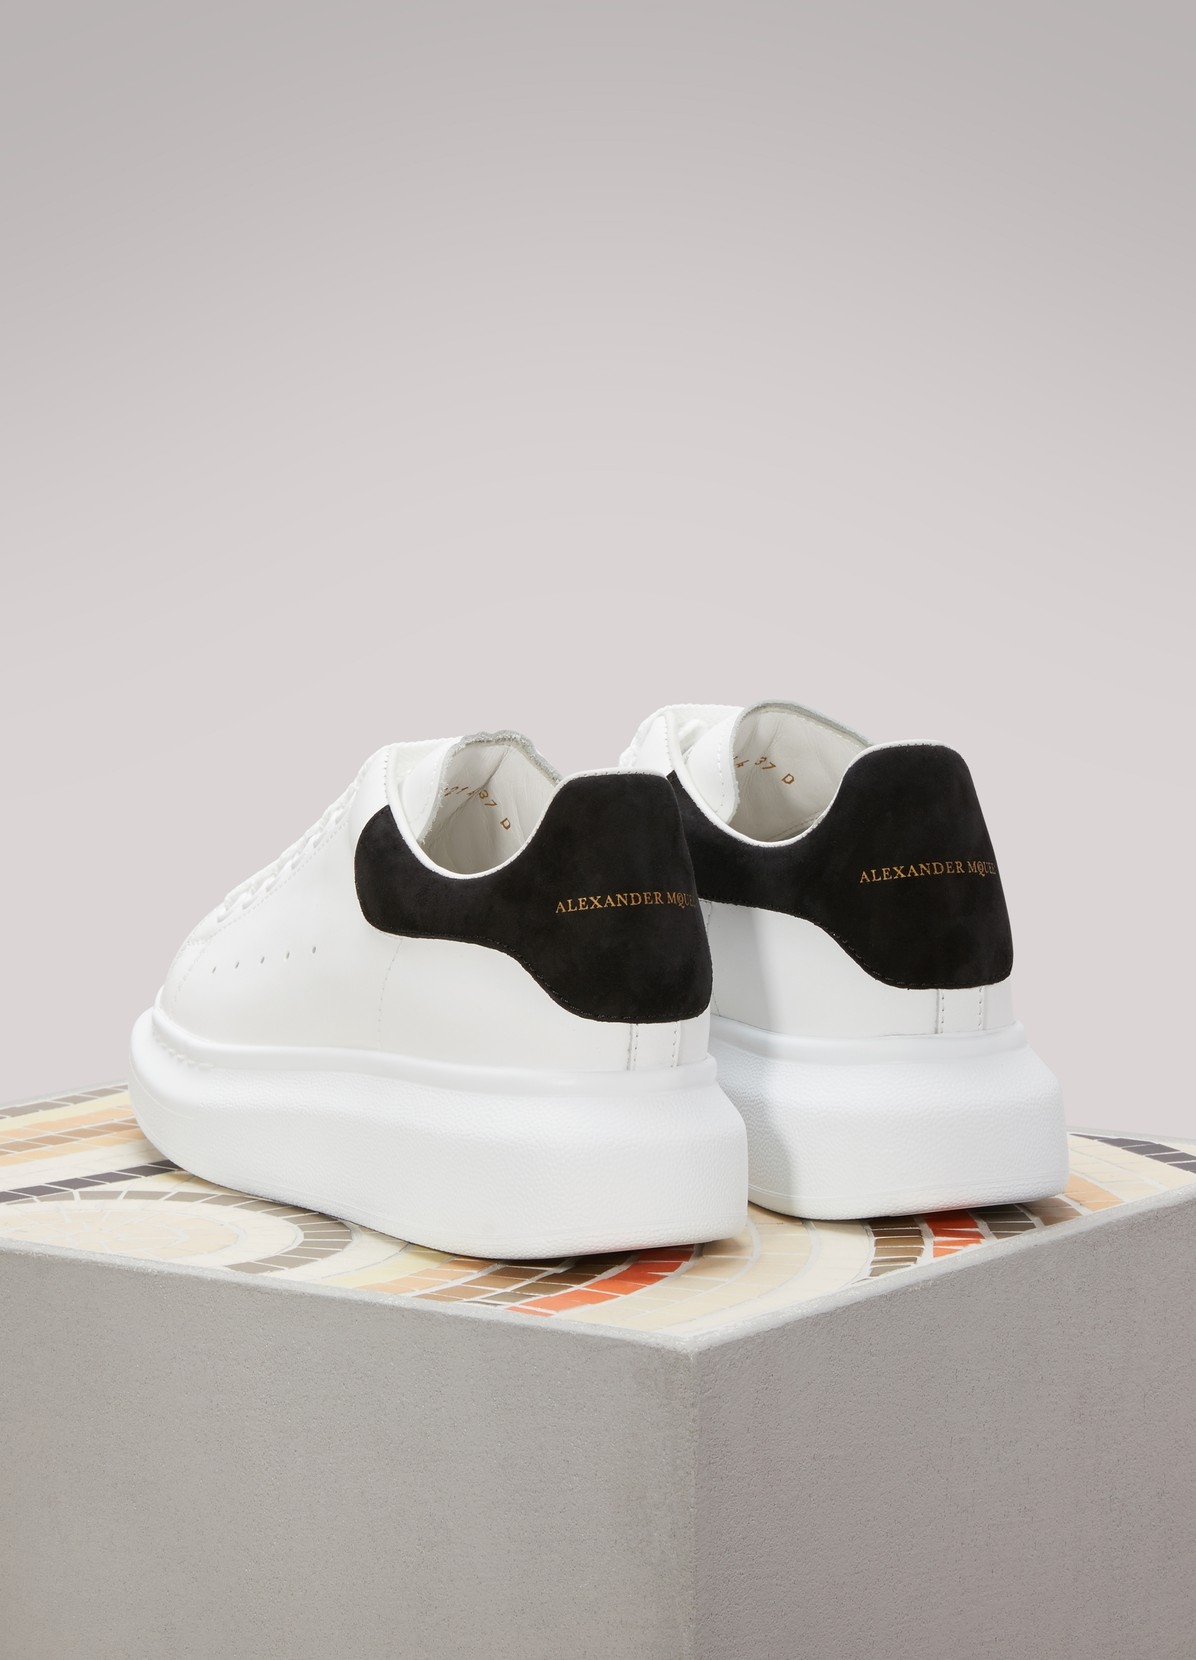 Suede Detail Leather Sneakers  ALEXANDER MCQUEEN  24 Svres